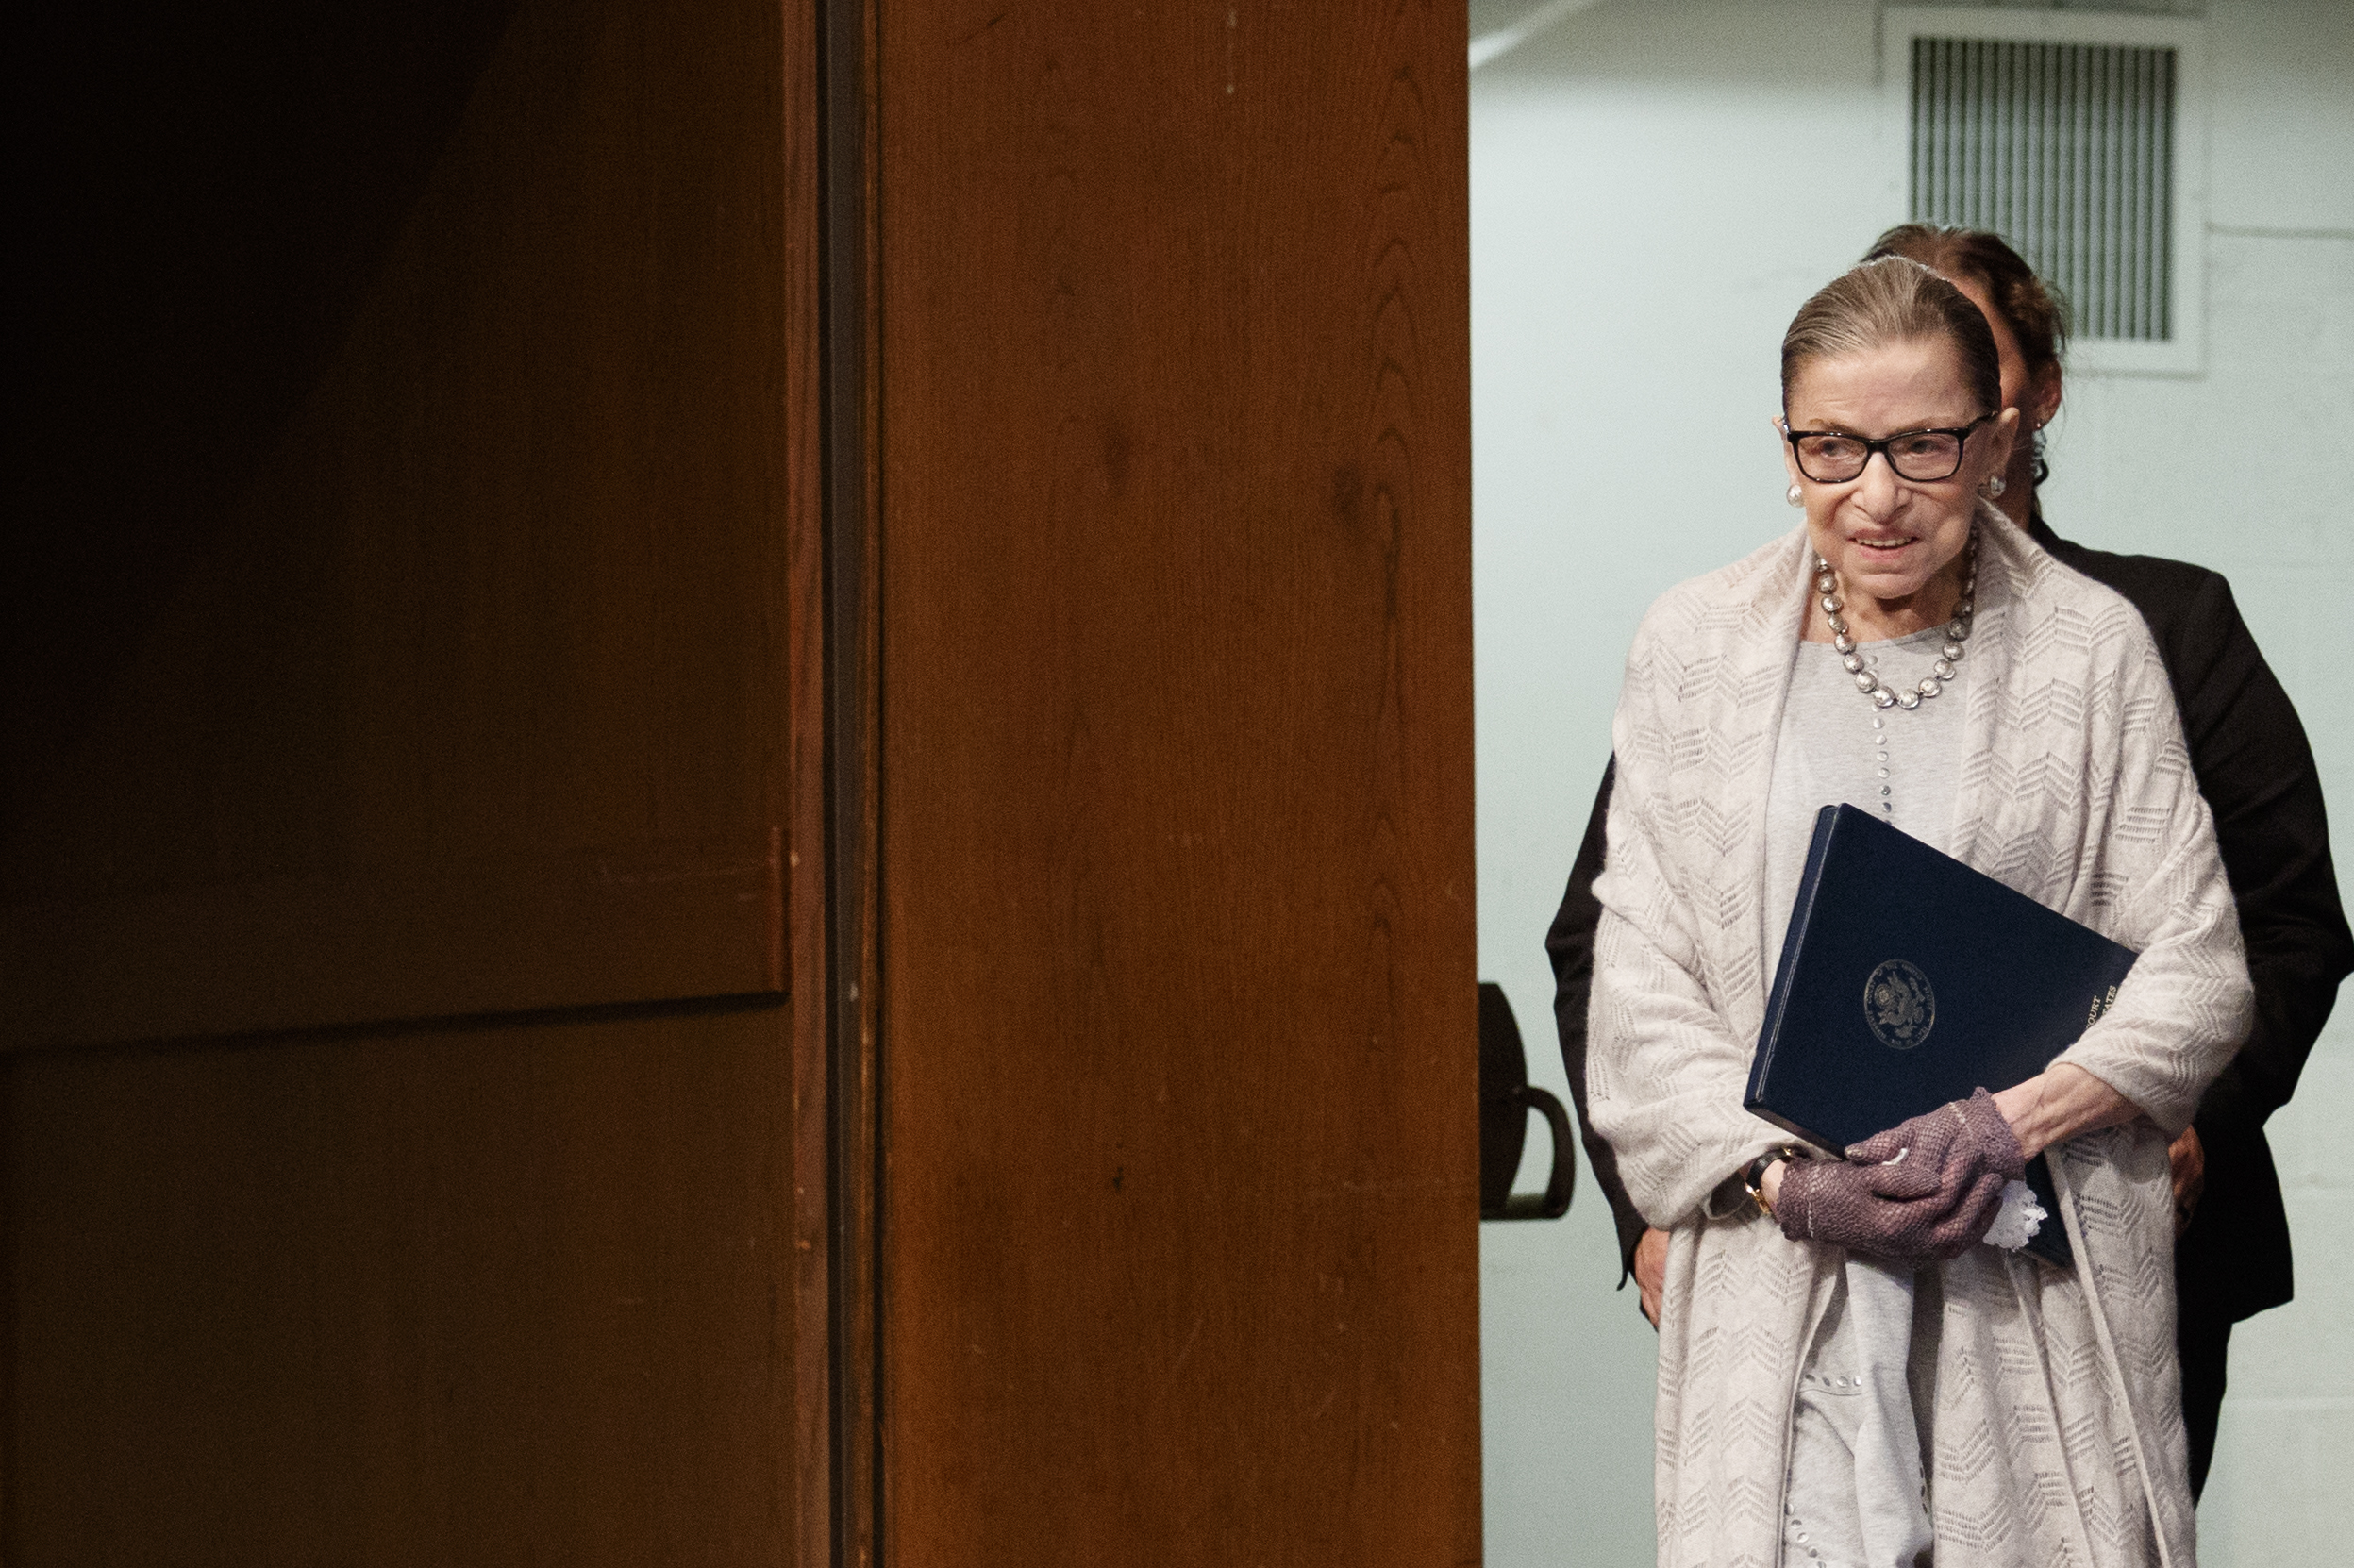 Justice Ruth Bader Ginsburg delivers remarks at the Georgetown University Law Center on September 12, 2019. (Tom Brenner/Getty Images)